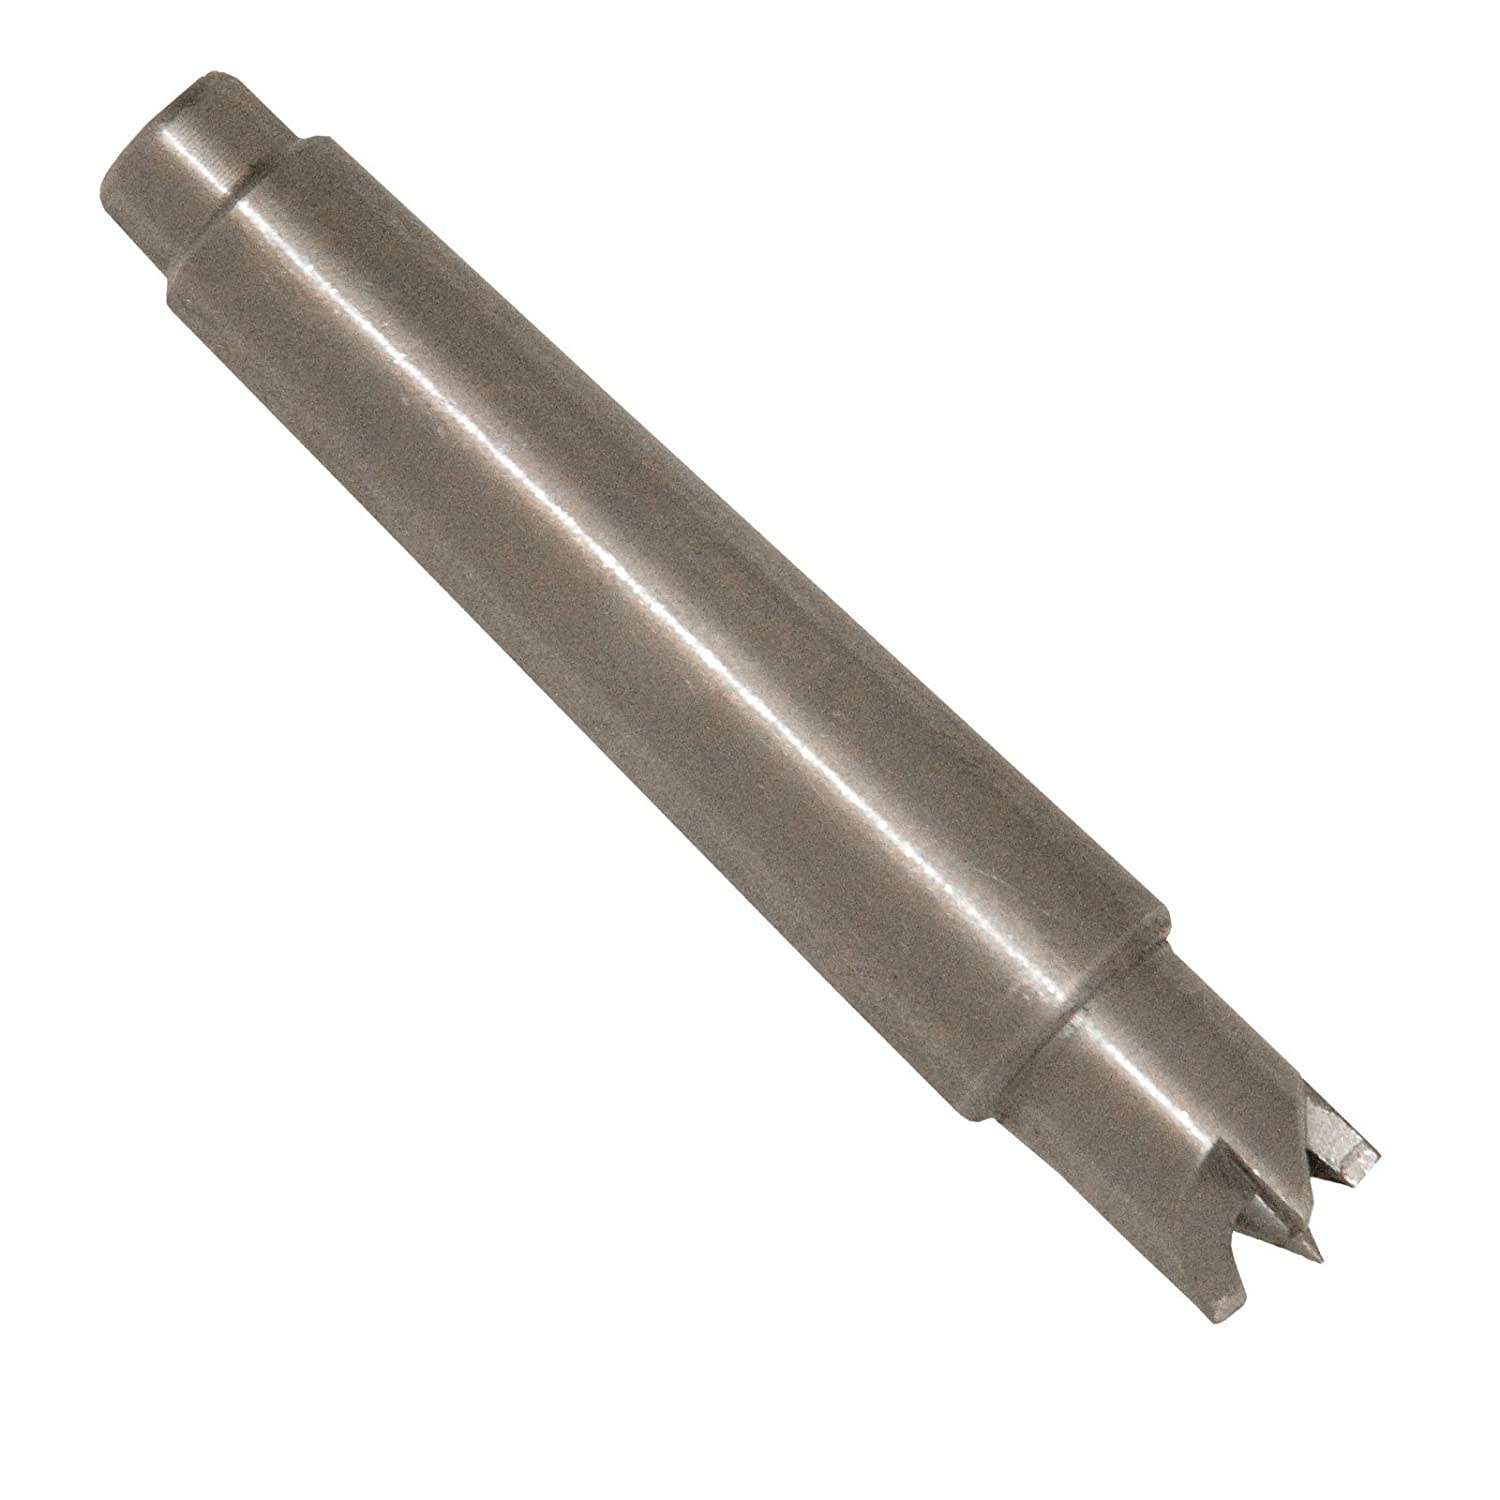 PSI Woodworking LCENTMDC2 Mini 4-Prong Drive Center #2MT, PSI Woodworking Products